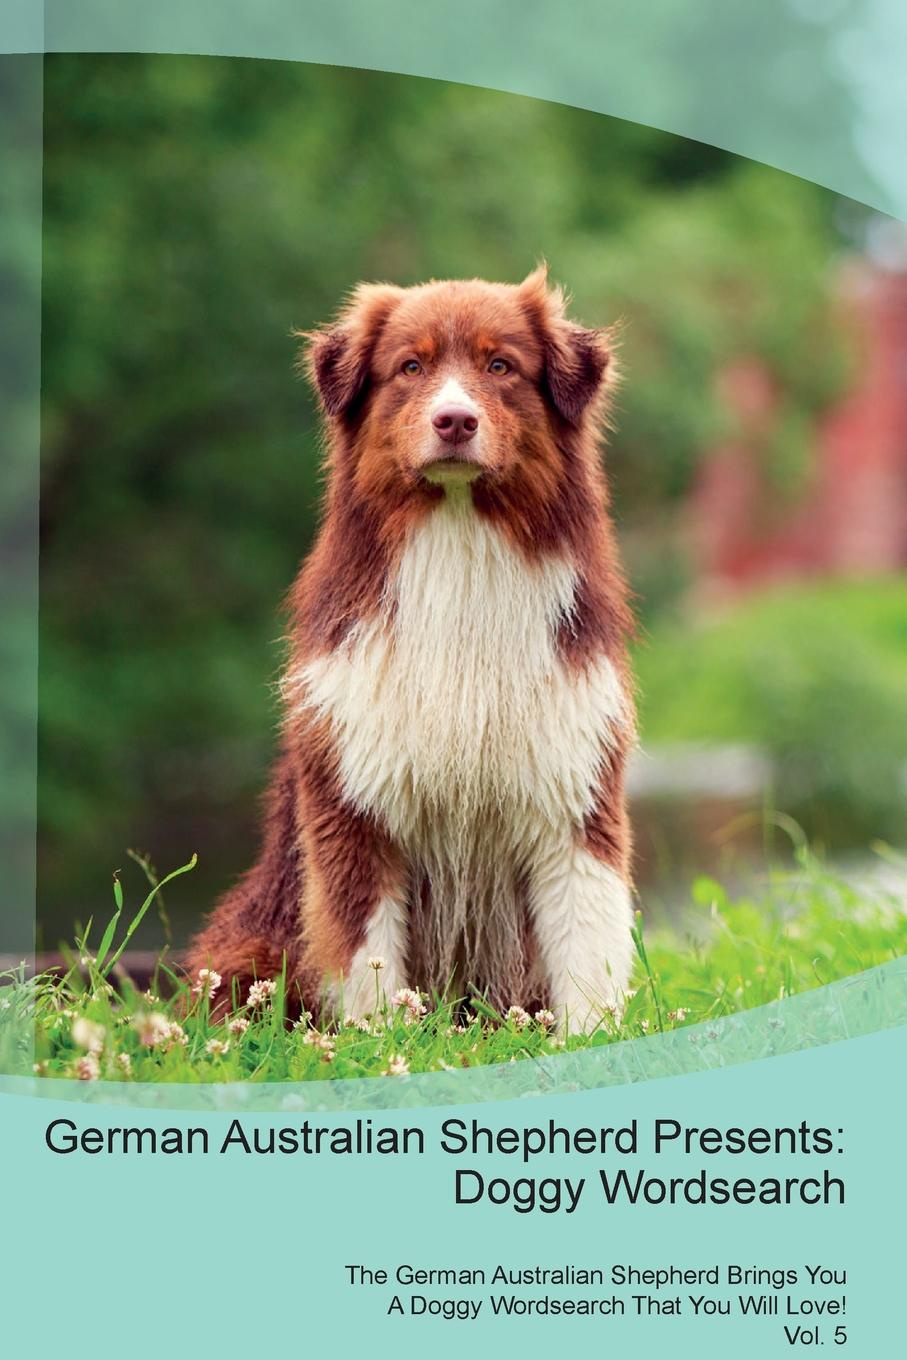 Doggy Puzzles German Australian Shepherd Presents. Wordsearch The Brings You A That Will Love! Vol. 5